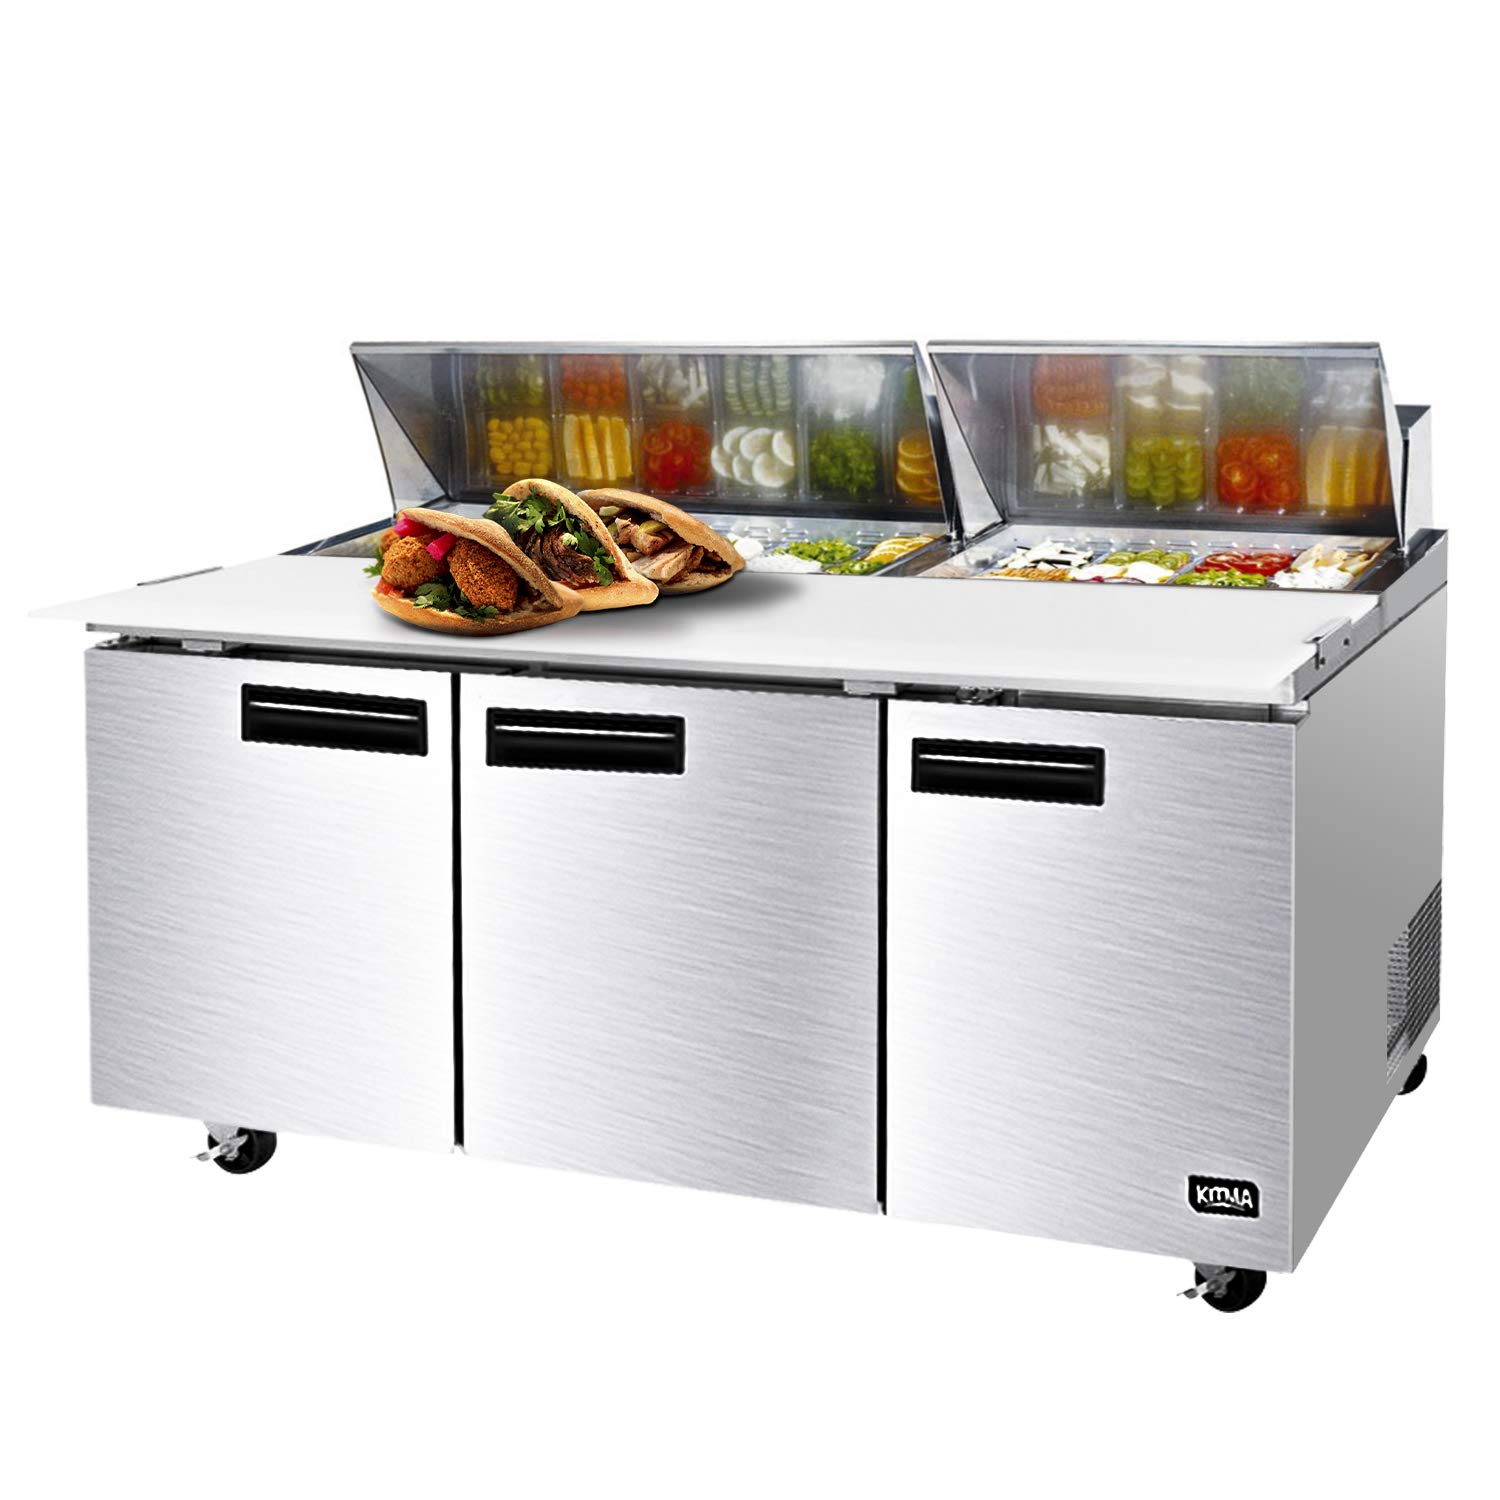 72 Inches Sandwich Salad Prep Table Refrigerator - KITMA 32.8 Cu. Ft 3 Door Food Prep Station Table with Cutting Board and 18 Pans, 33 °F - 38°F